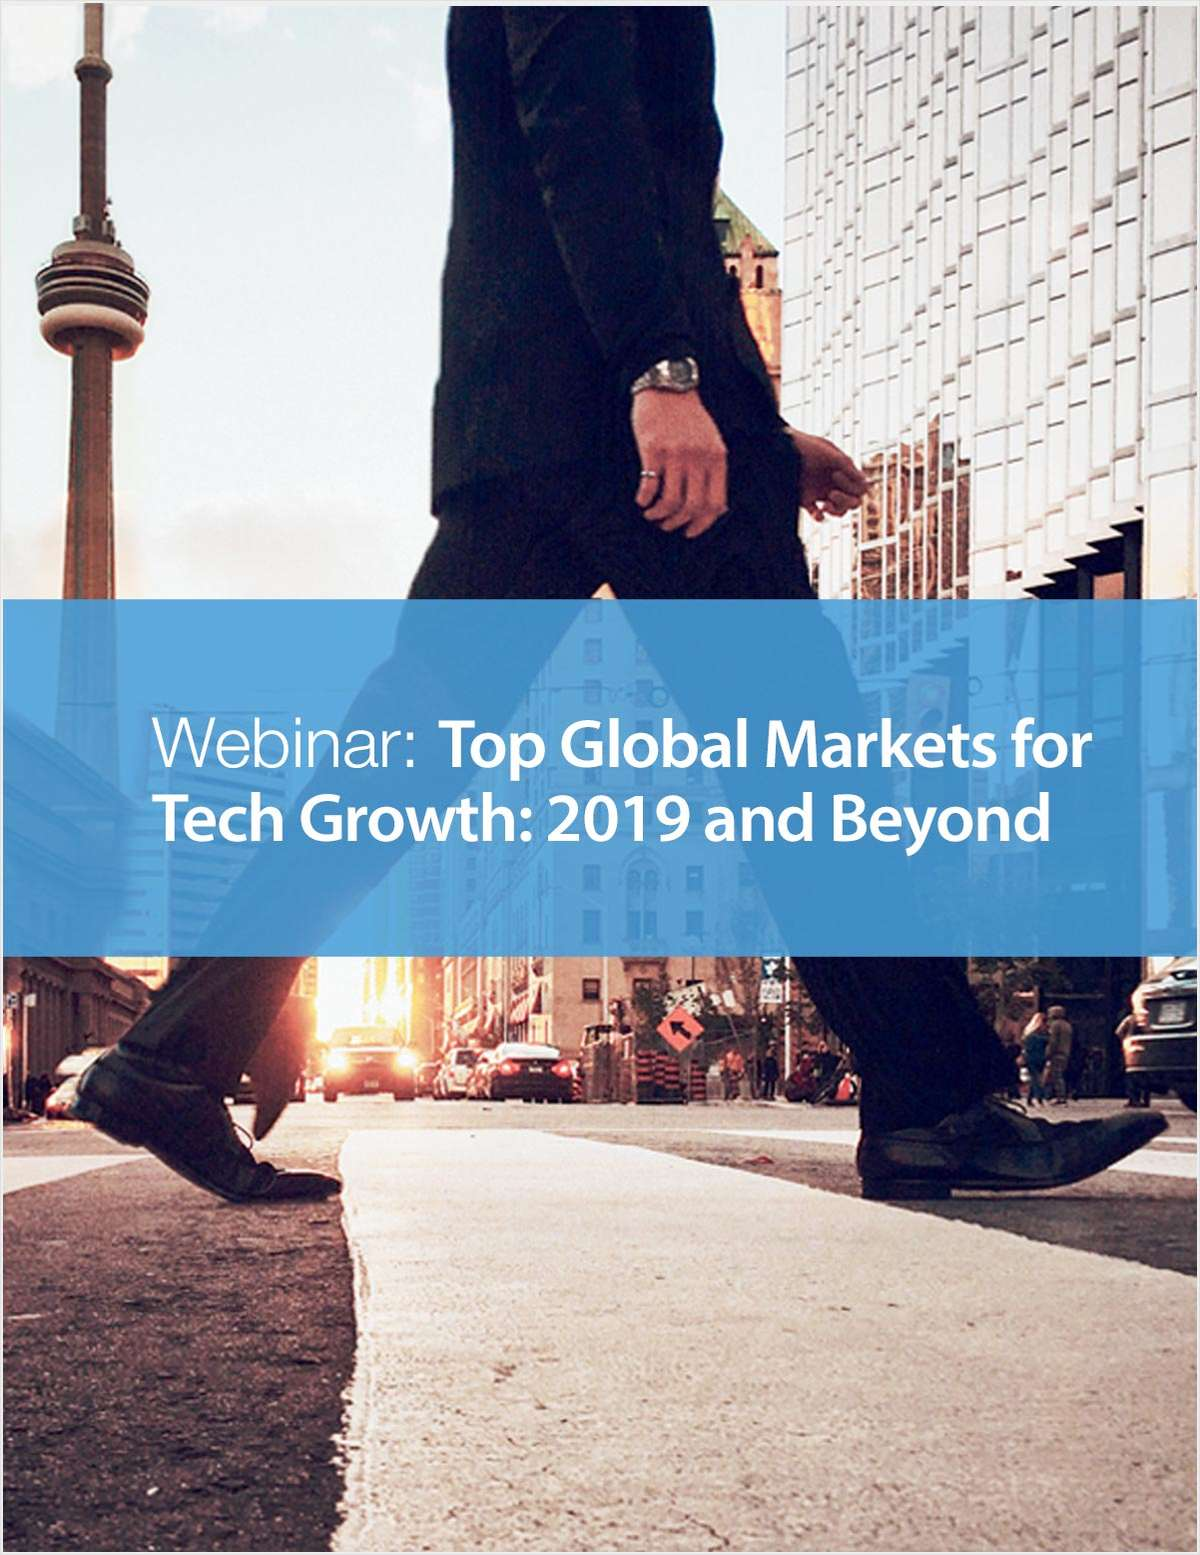 Webinar: Top Global Markets for Tech Growth: 2019 and Beyond